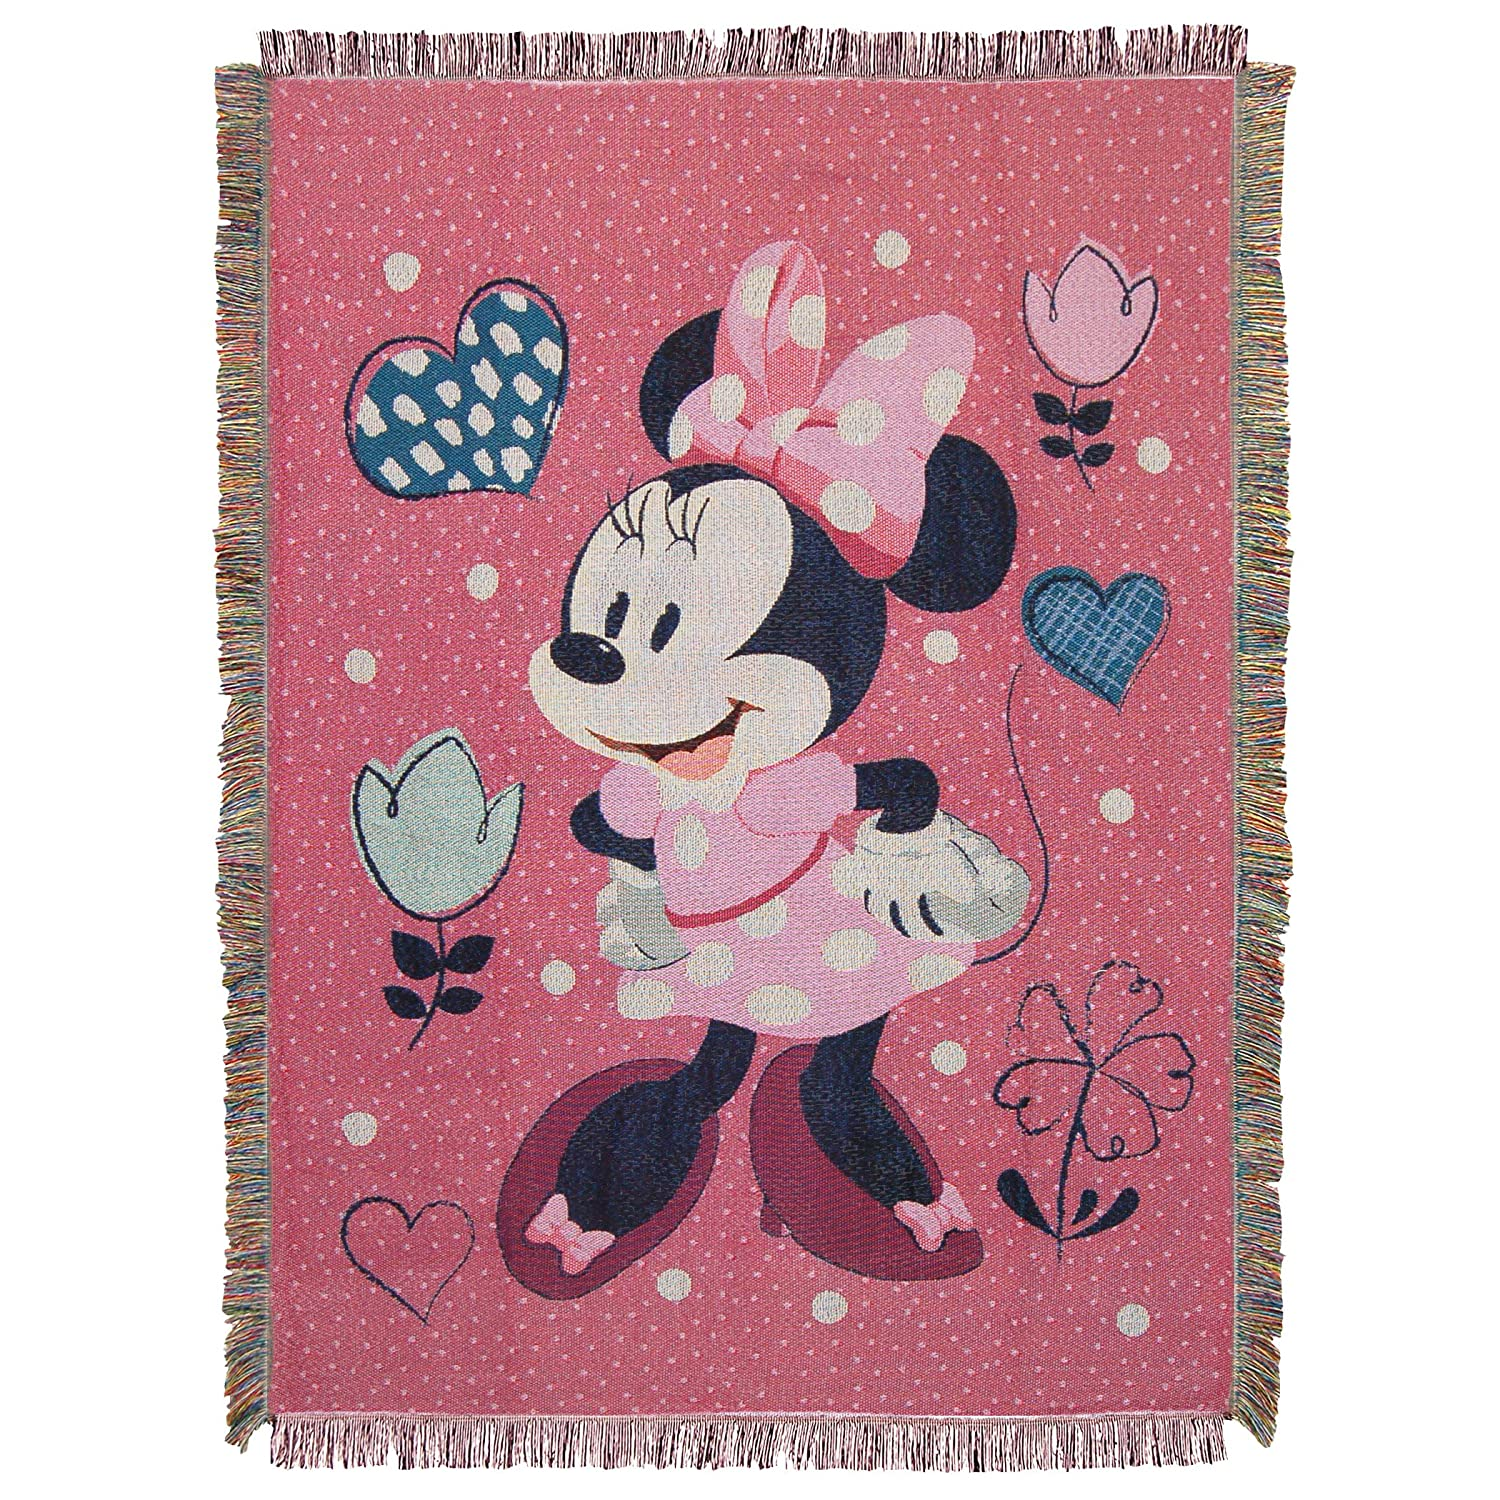 Disney Happy Helpers,Minnie to The Rescue Woven Tapestry 48' X 60' Throw Blanket, Multicolor Minnie to The Rescue Woven Tapestry 48 X 60 Throw Blanket The Northwest Company 1MIC/05100/0014/RET